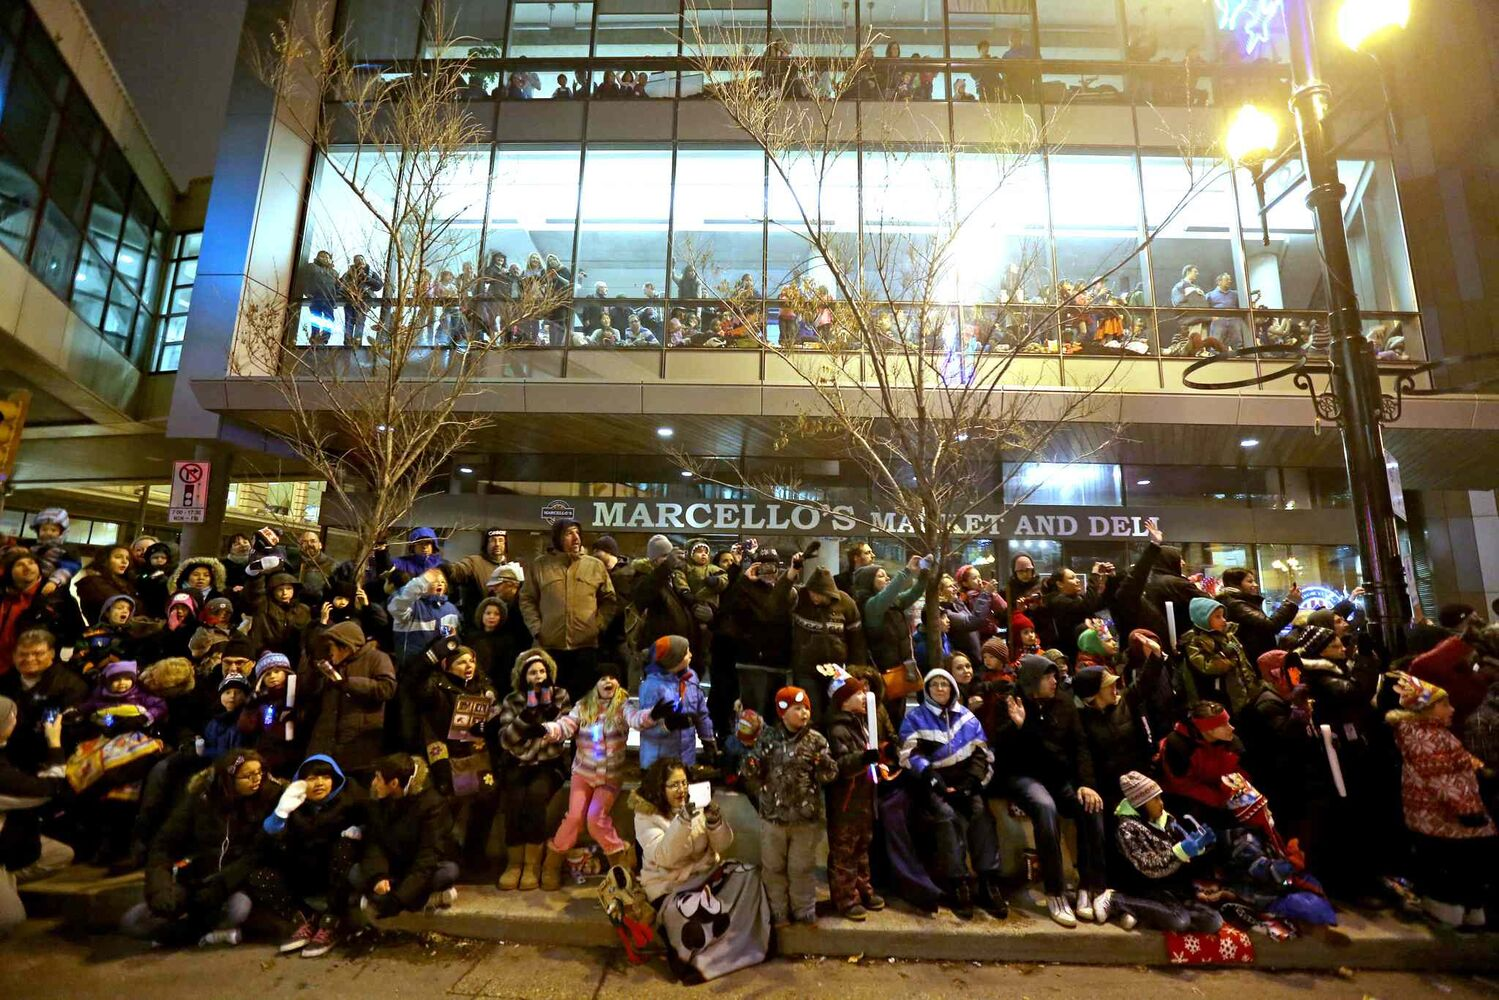 Large crowds gathered in front of the Manitoba Hydro building. (TREVOR HAGAN / WINNIPEG FREE PRESS)